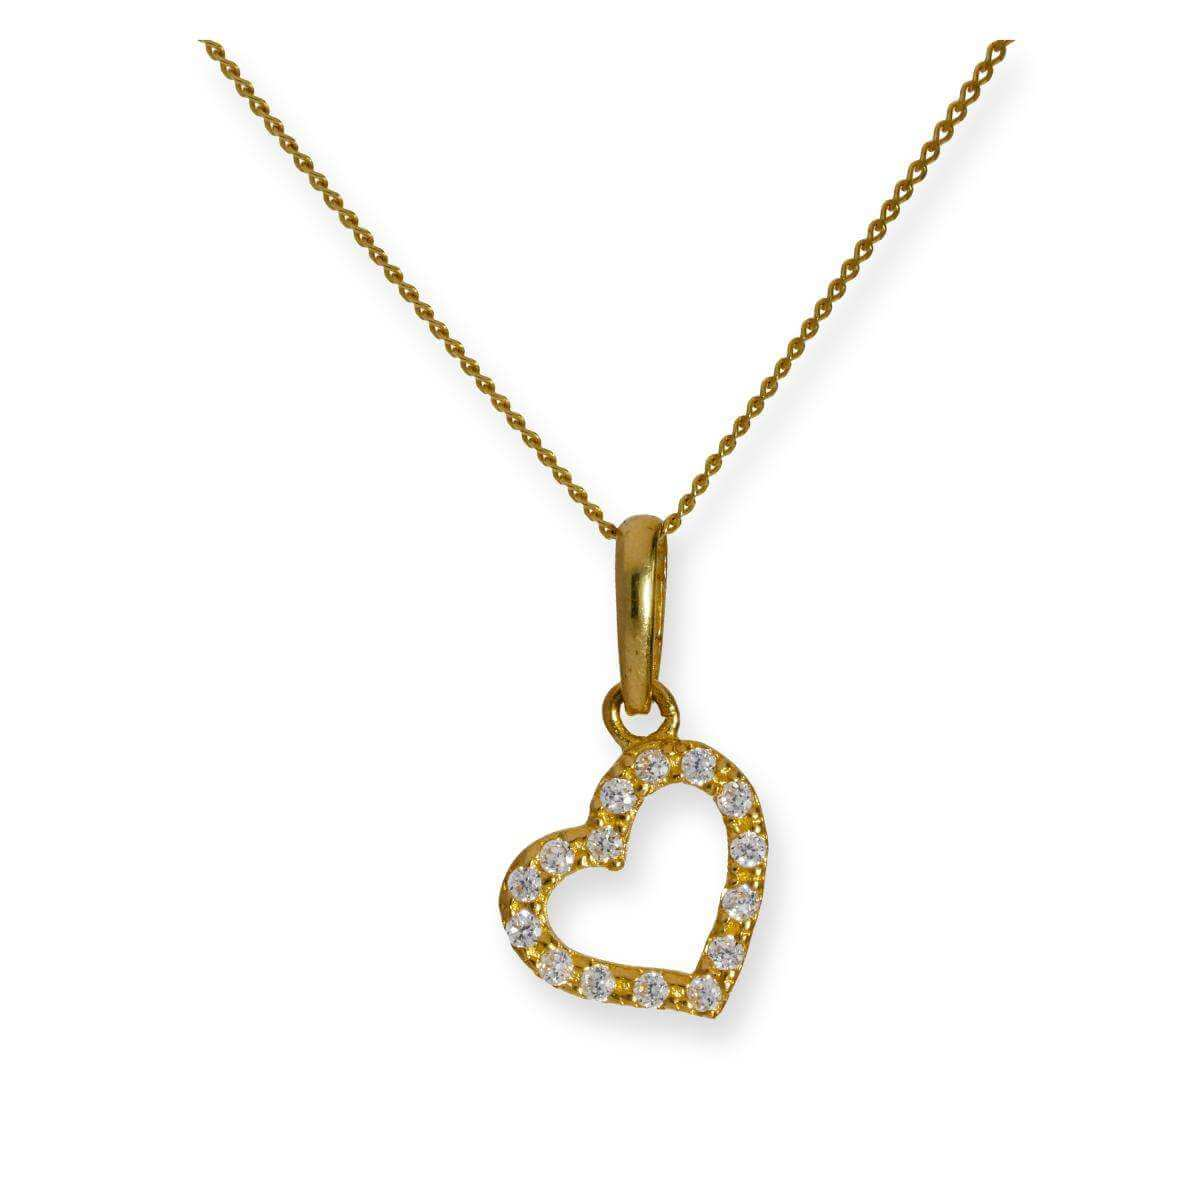 9ct Gold & Clear CZ Crystal Heart Outline Pendant Necklace 16 - 20 Inches